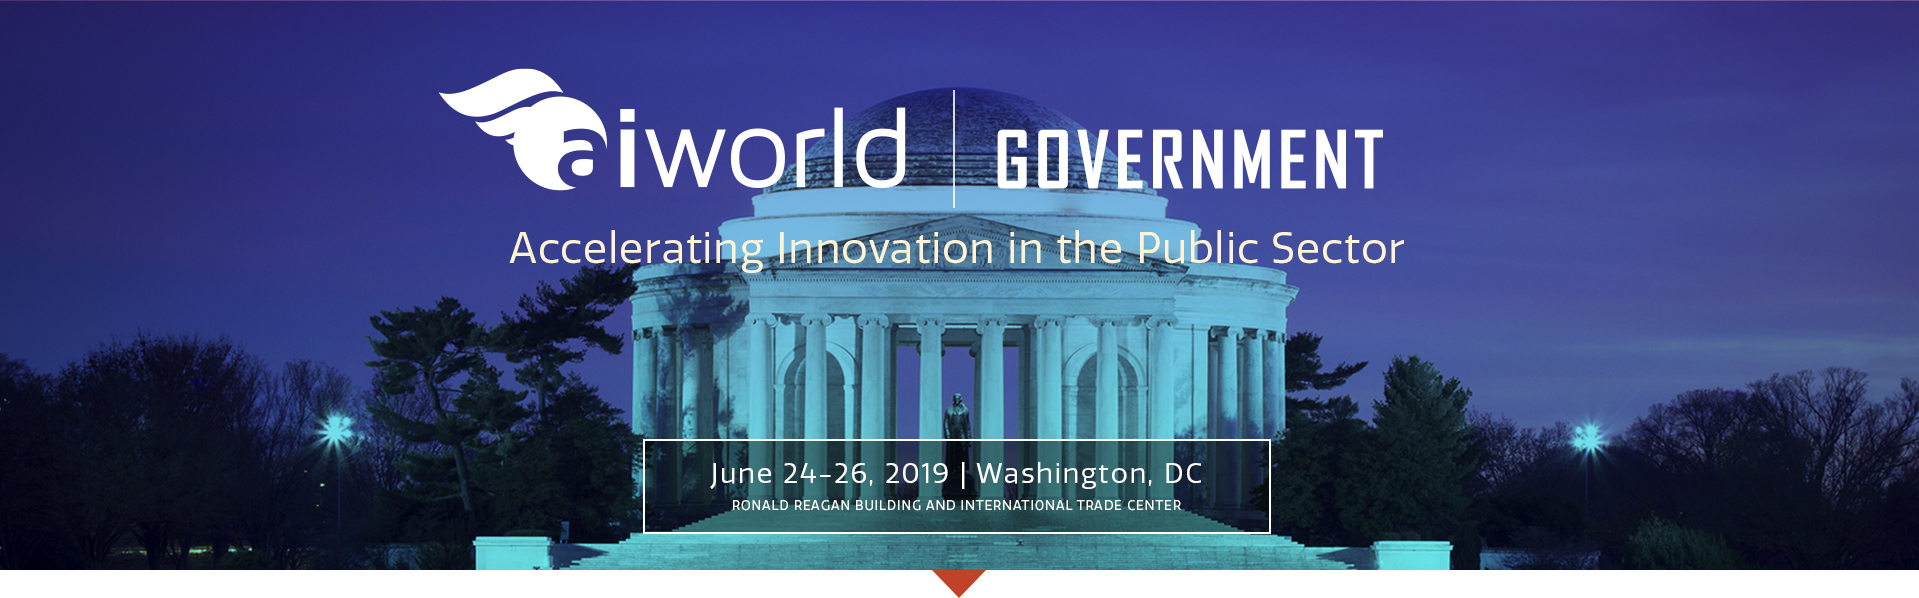 AI World Government 2019